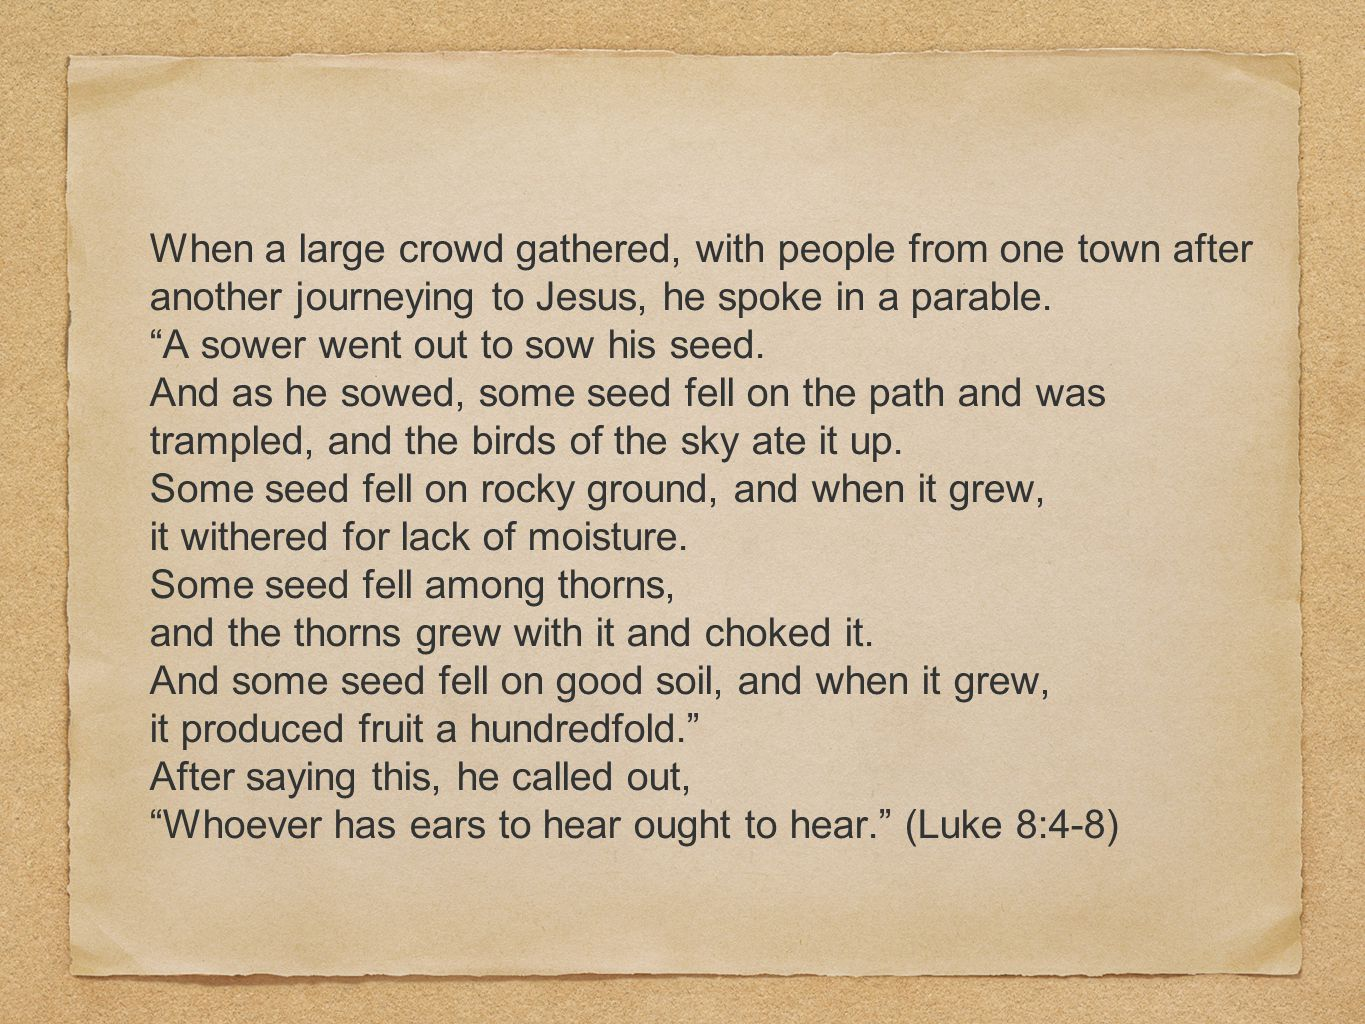 When a large crowd gathered, with people from one town after another journeying to Jesus, he spoke in a parable.